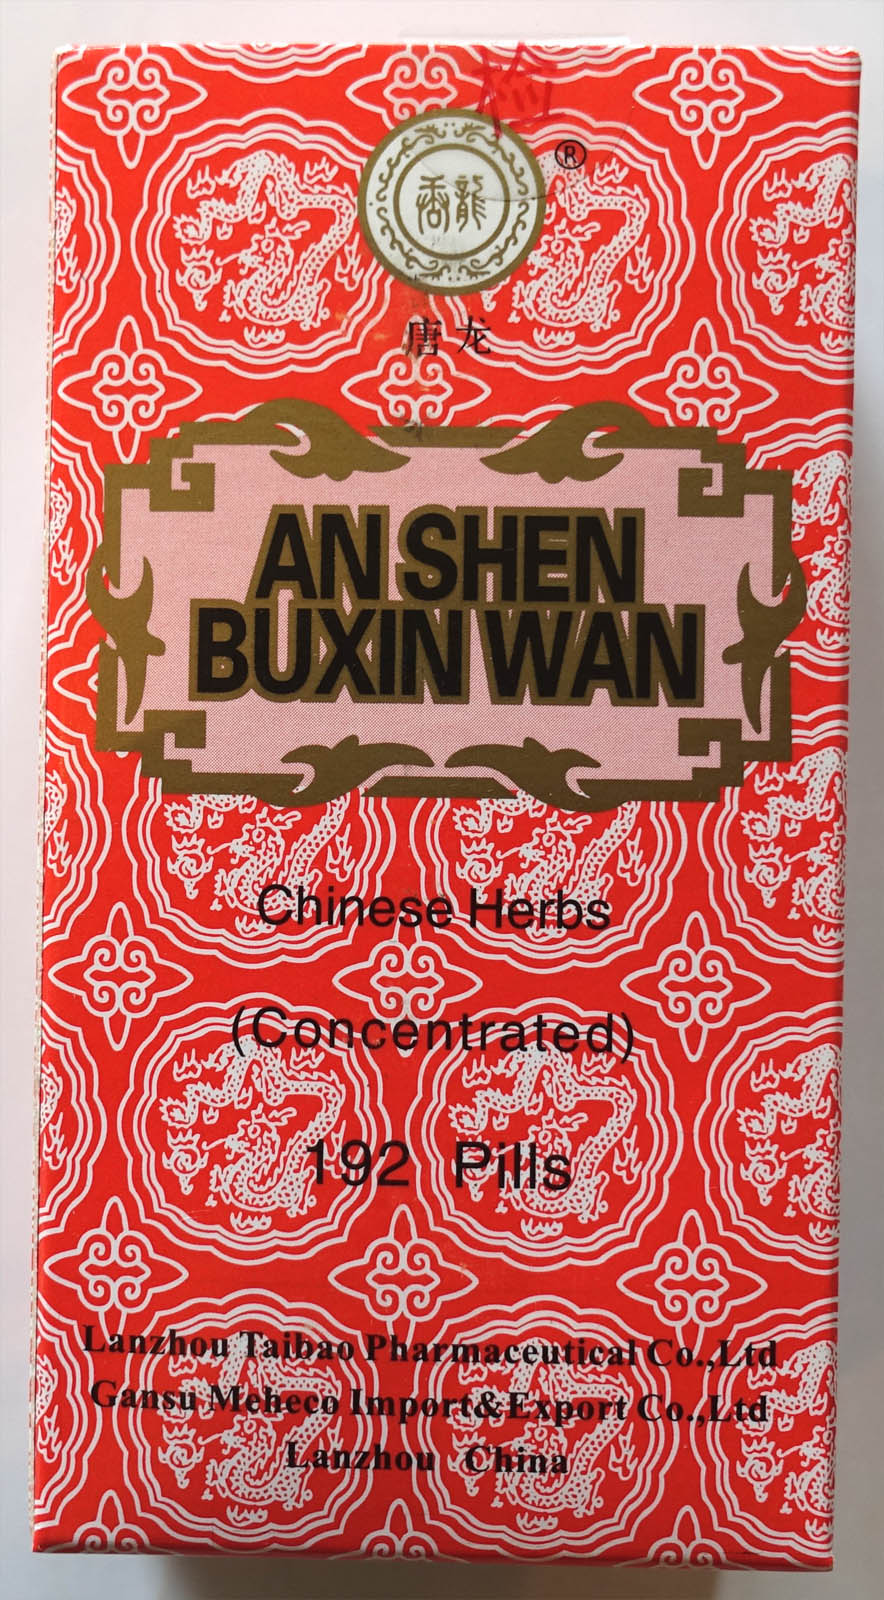 An Shen Bu Xin wan, Calm Spirit & Nourish Heart Pill